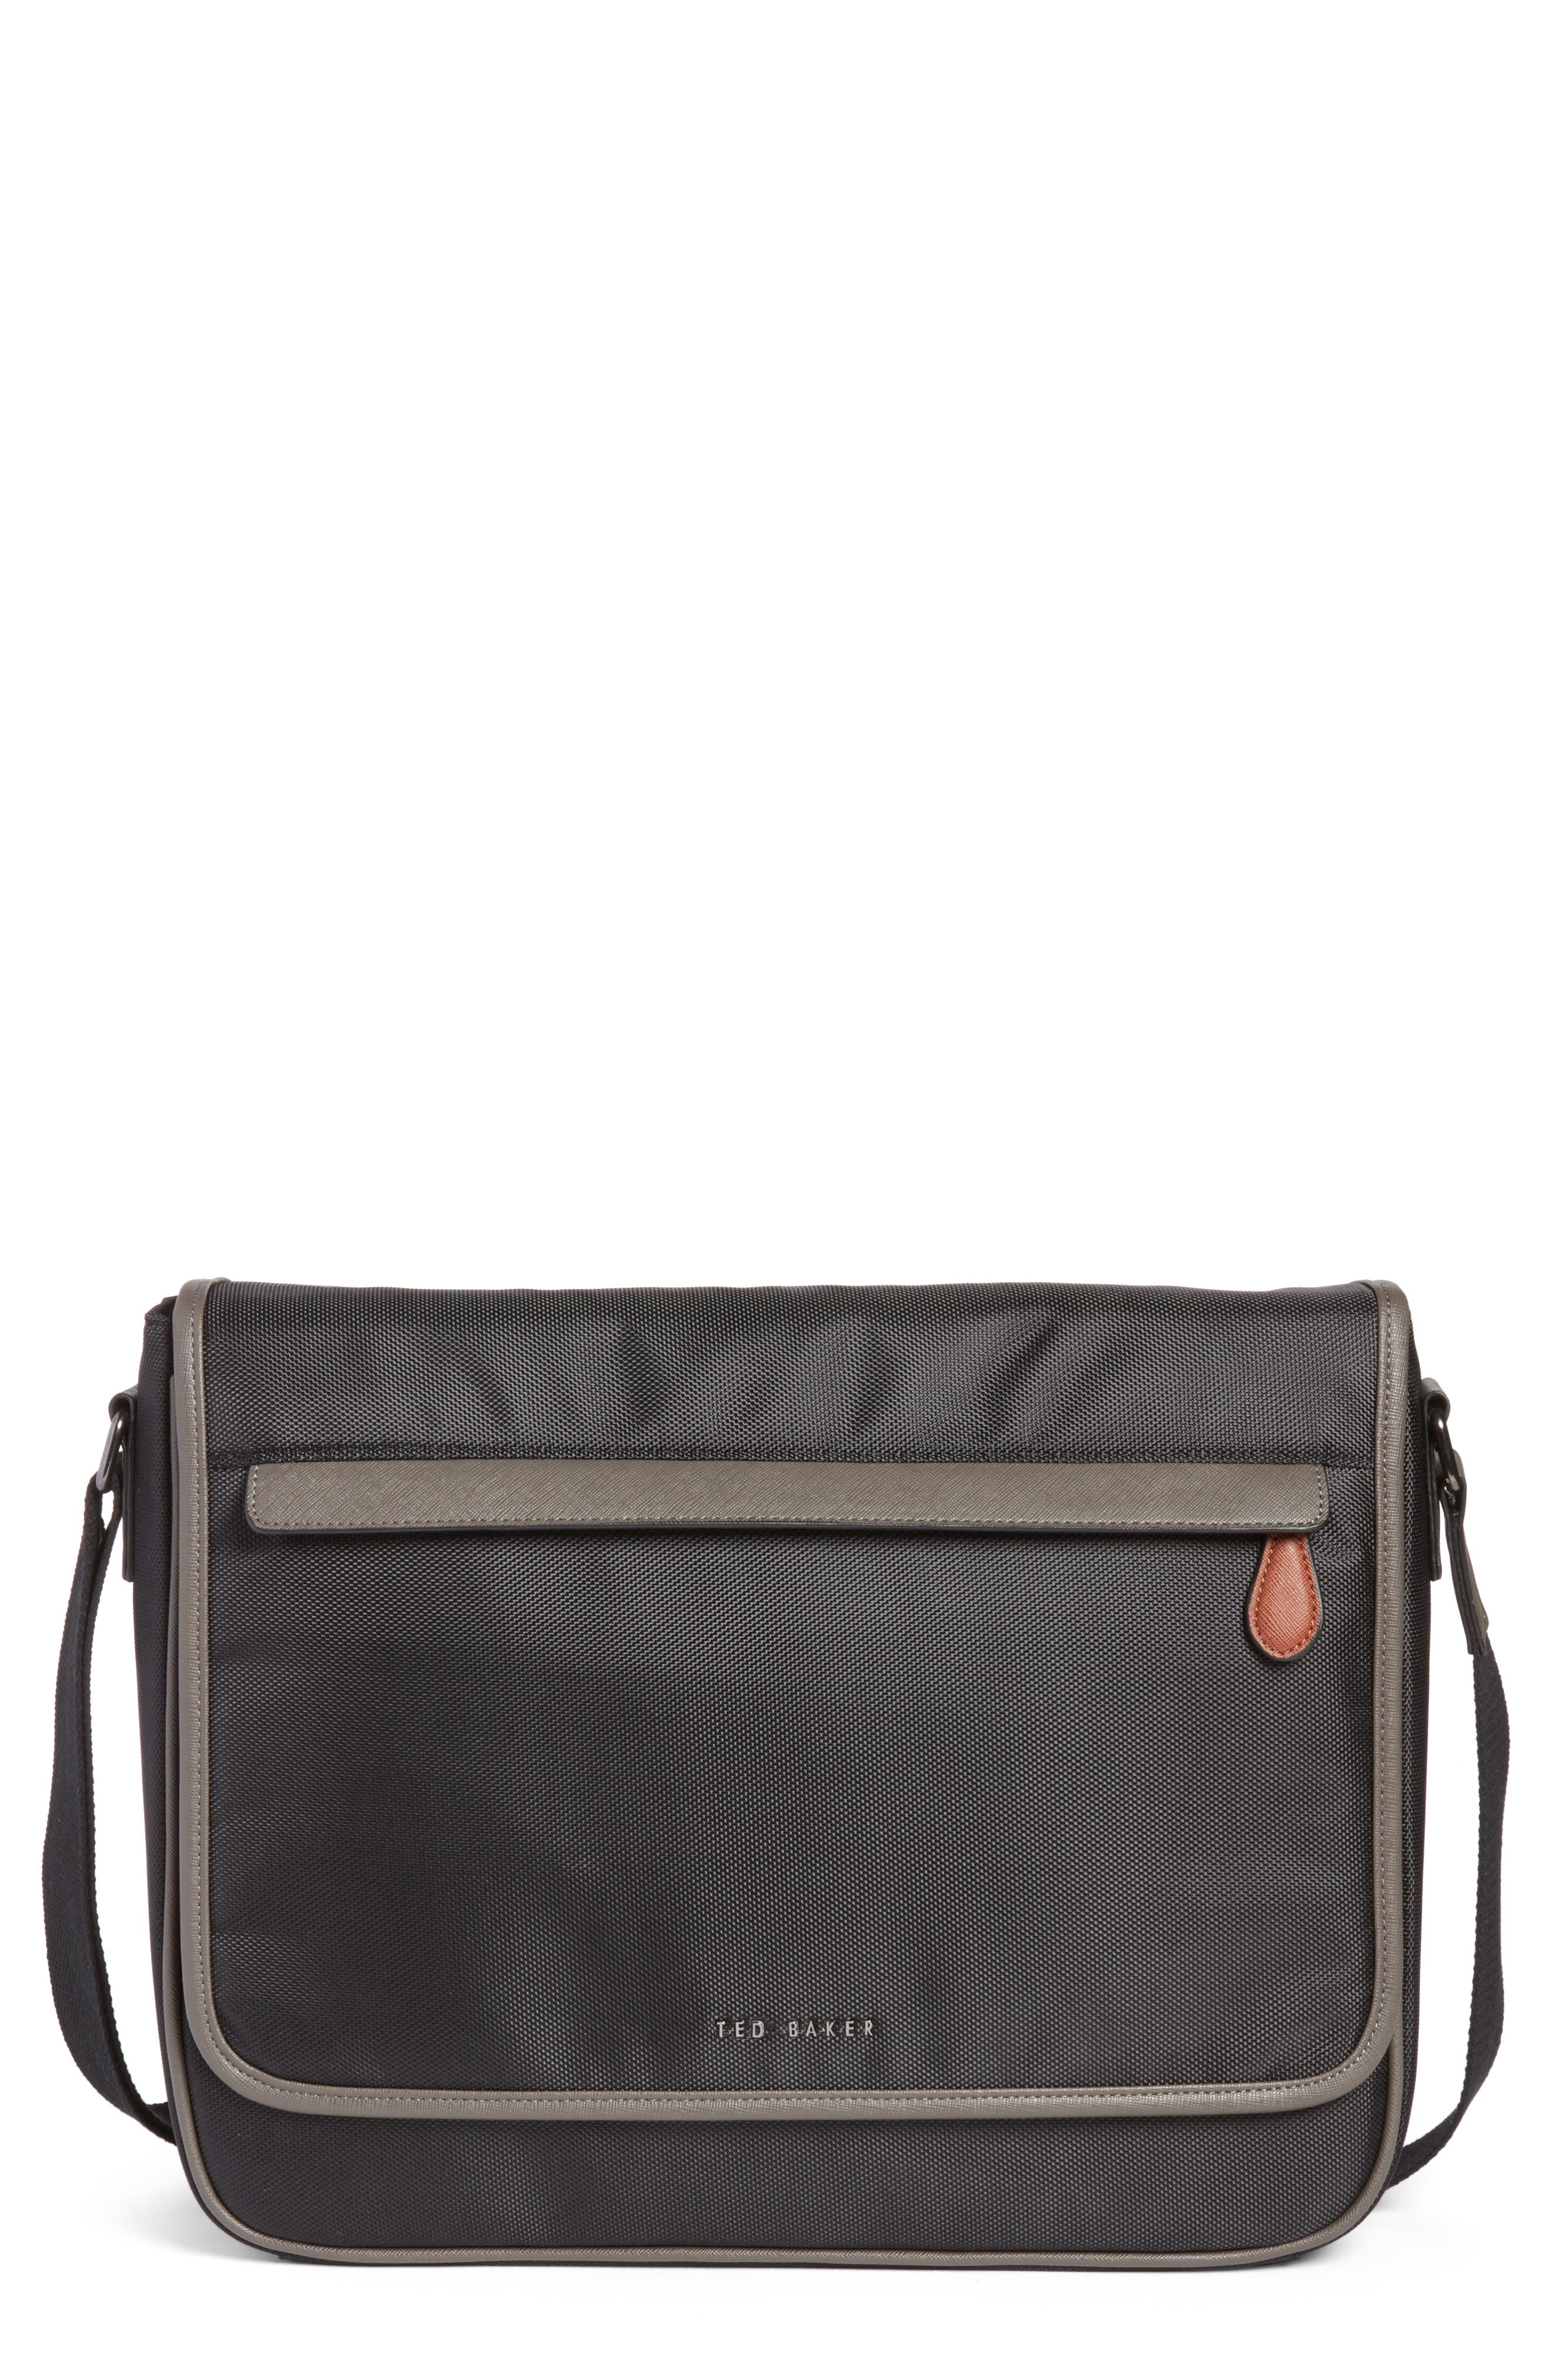 TED BAKER LONDON Wisker Messenger Bag